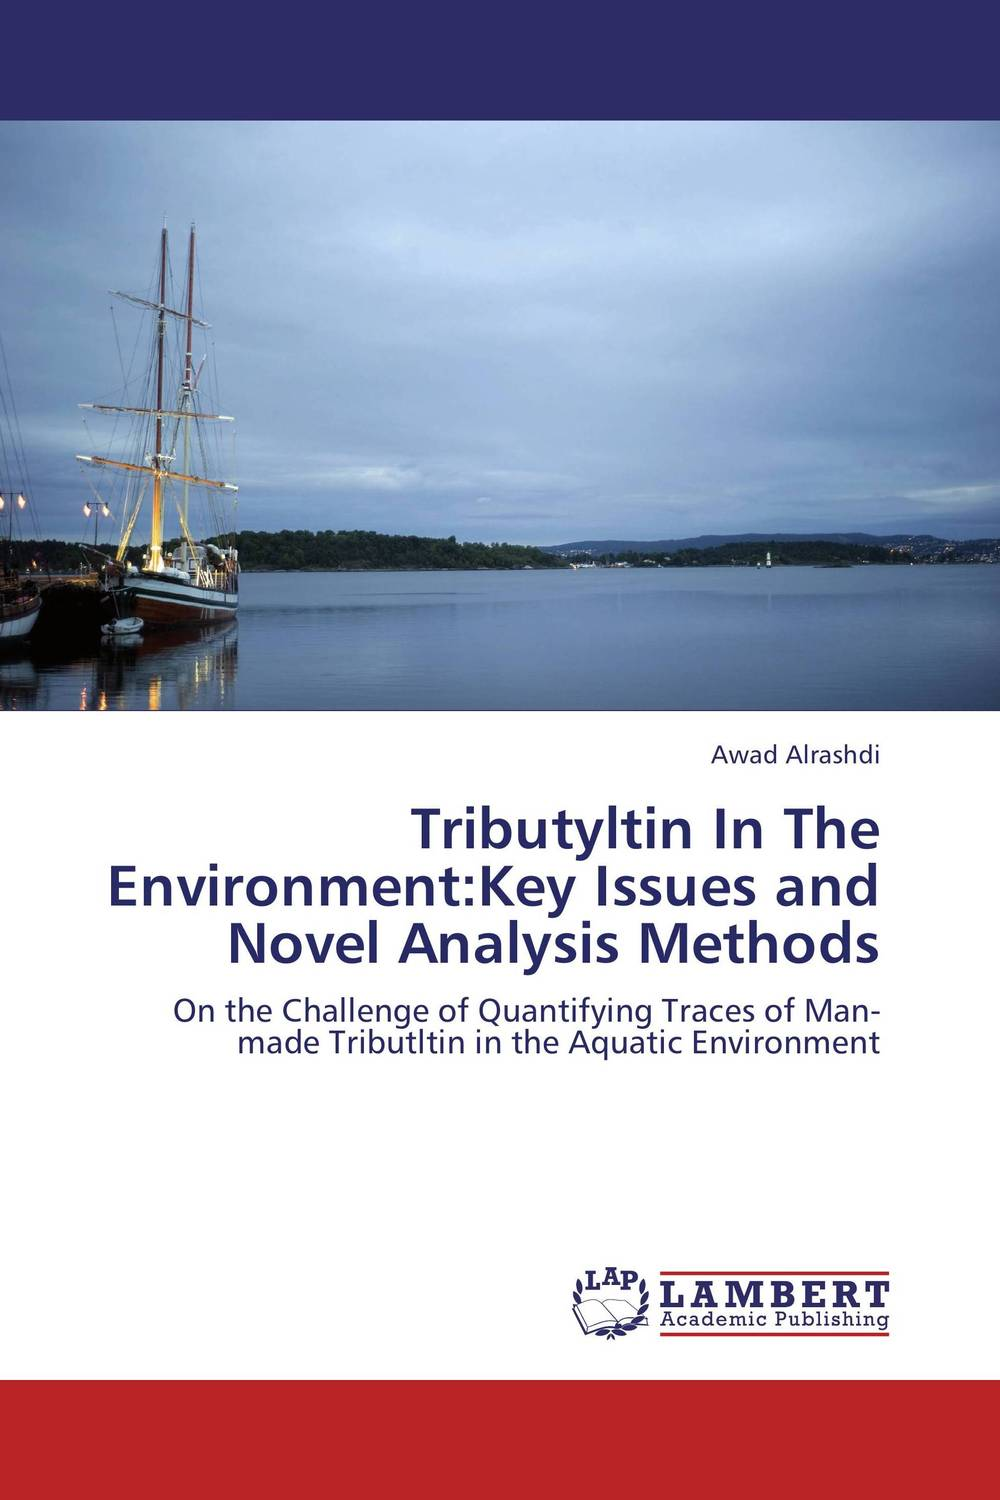 Tributyltin In The Environment:Key Issues and Novel Analysis Methods the lonely polygamist – a novel